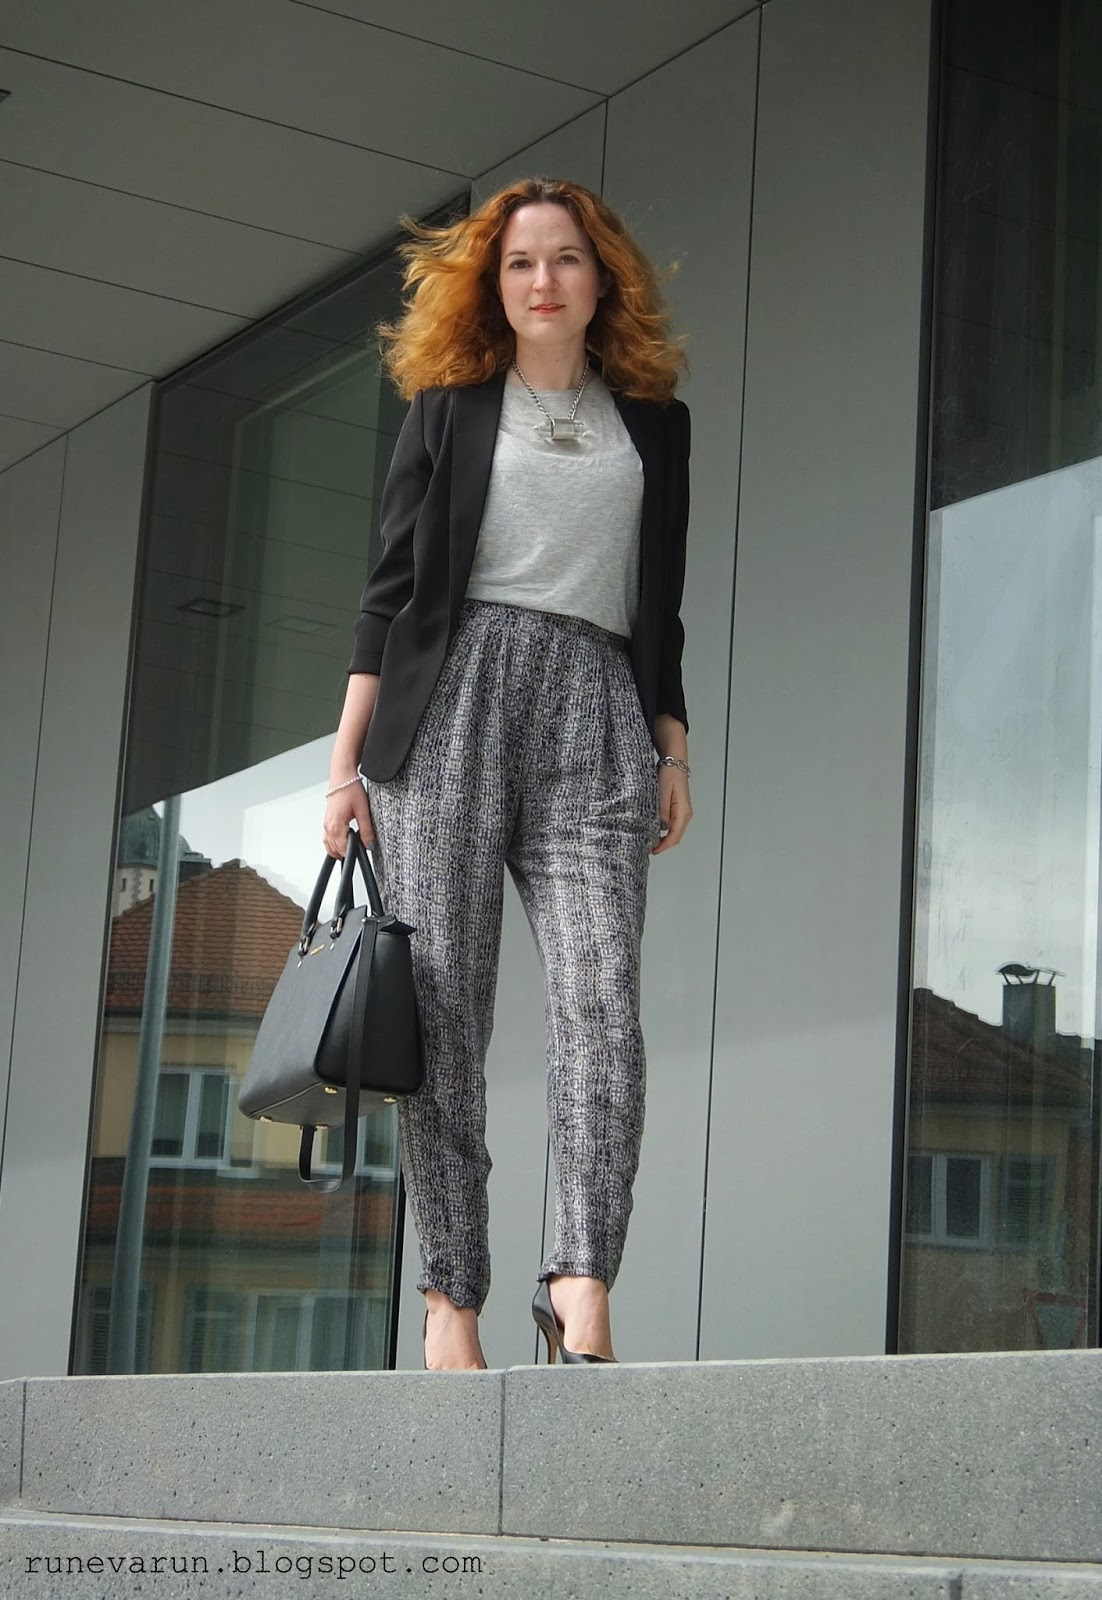 http://runevarun.blogspot.de/2015/04/ootd-jogg-pants-at-work.html